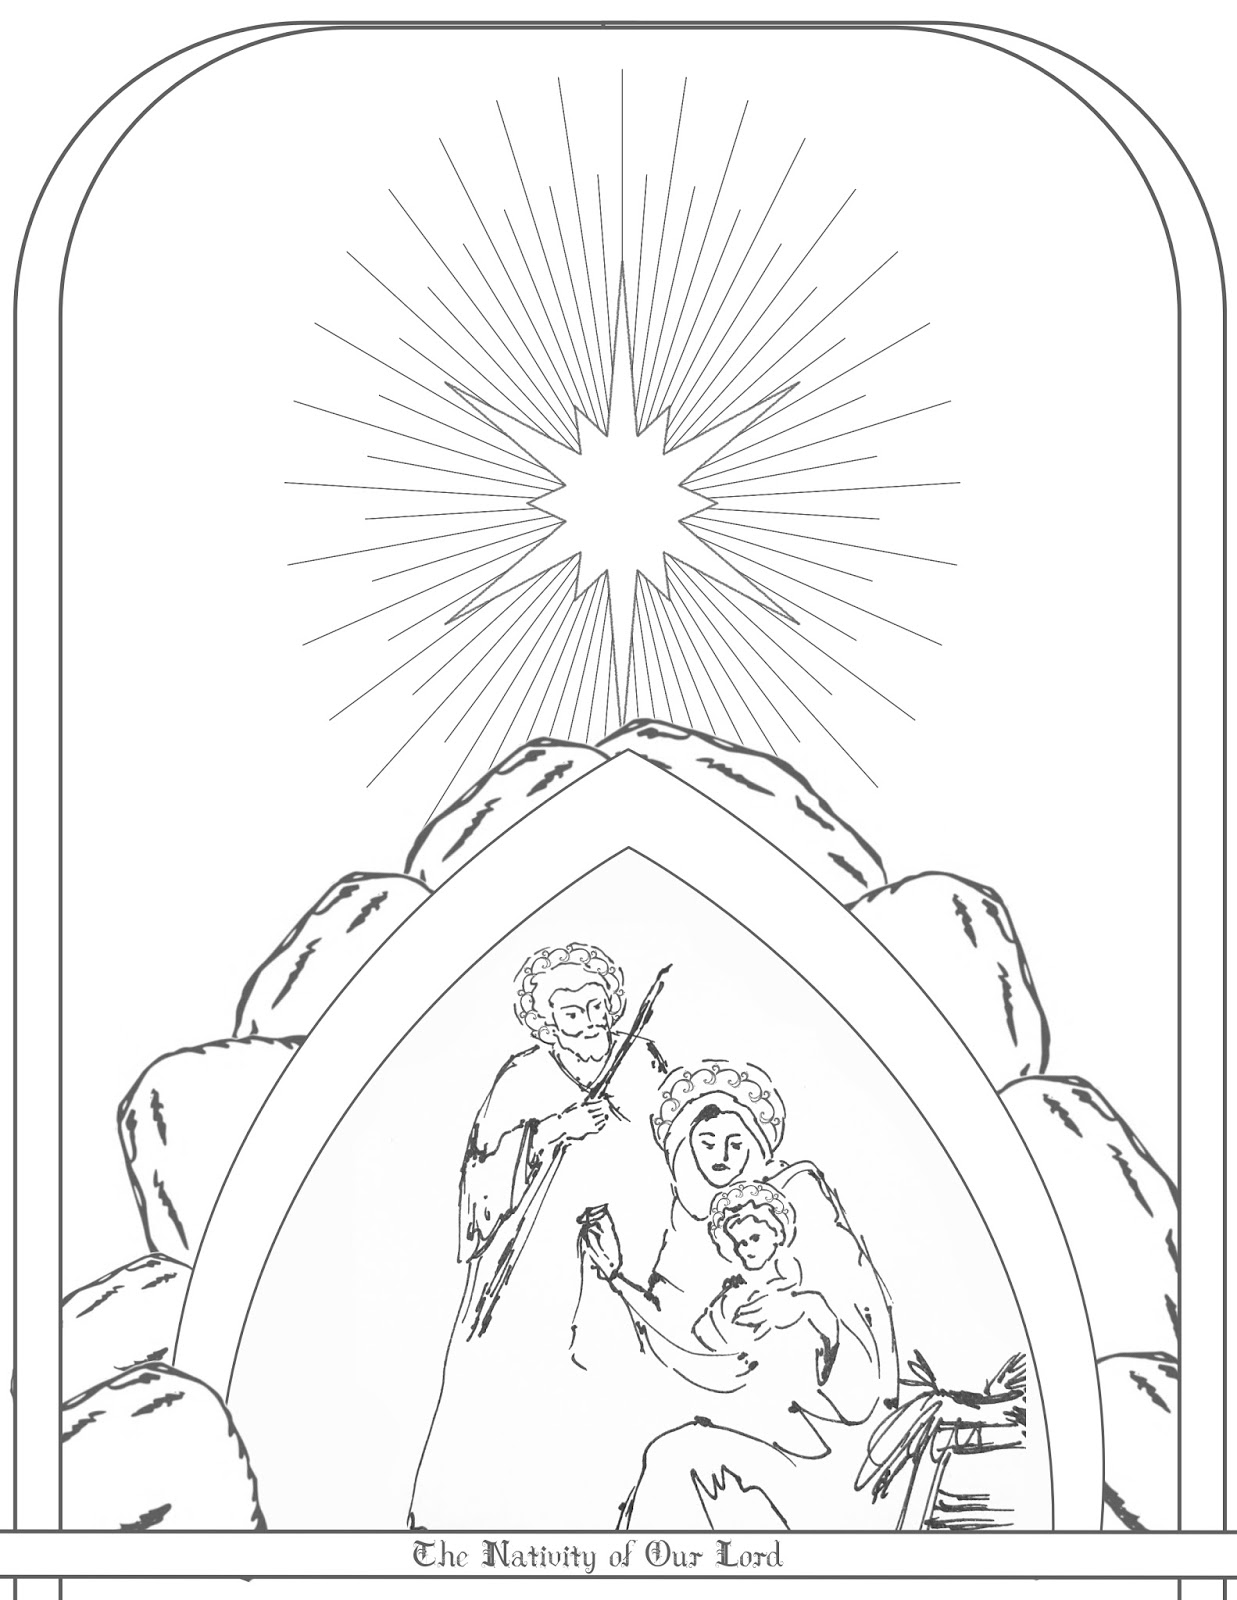 Free coloring pages nativity scene - I Couldn T Find Any Coloring Pages With A Nativity Scene In A Cave So Here You Go In Case You Were Looking For One Too